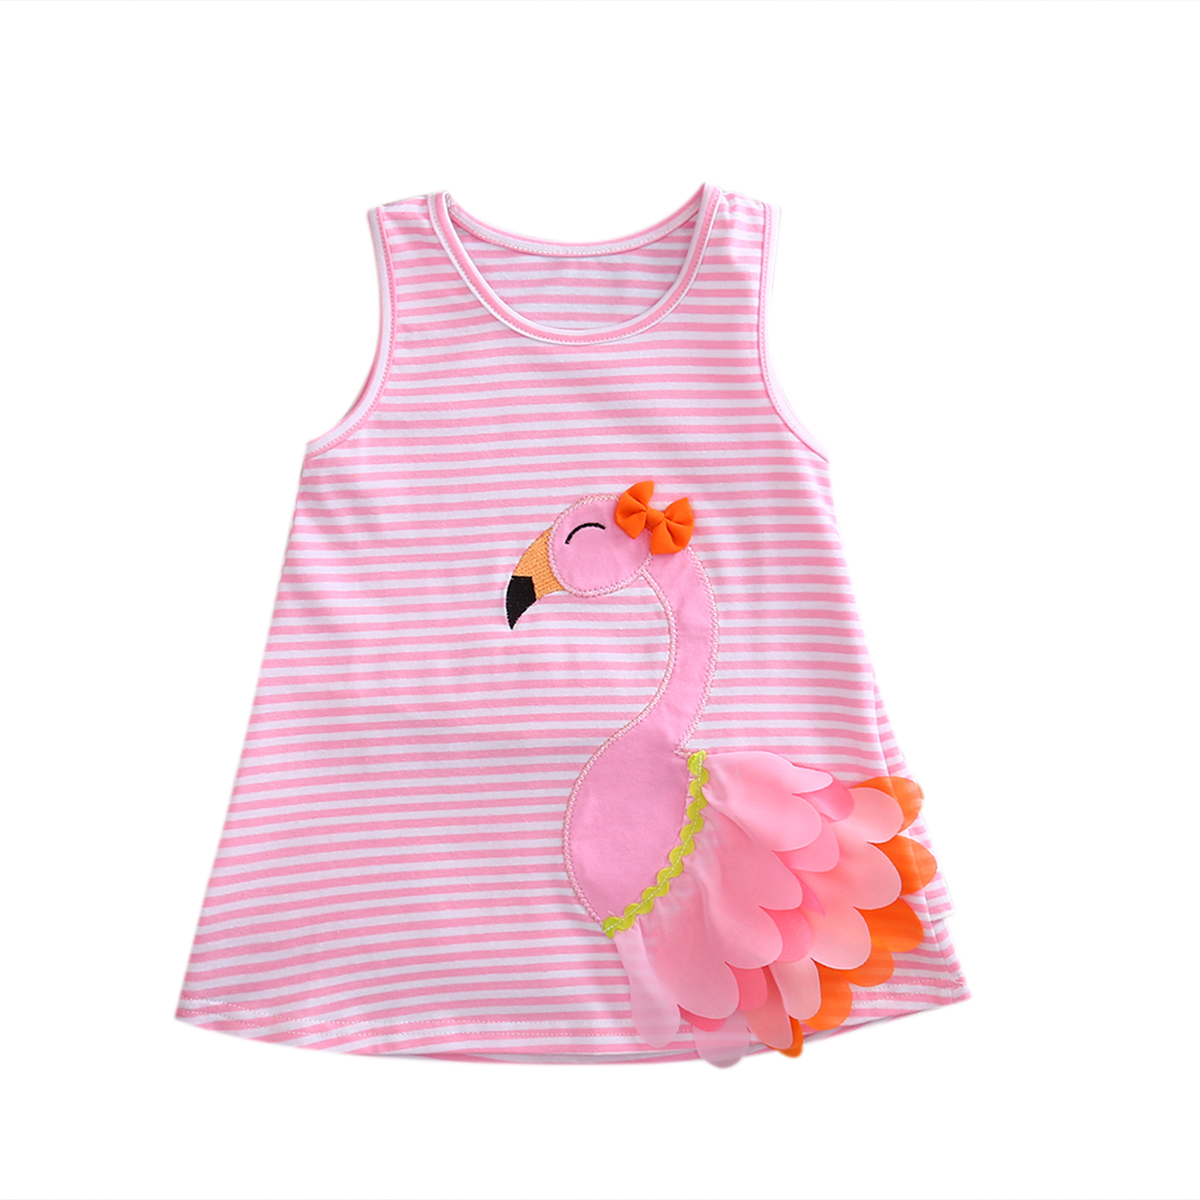 Baby Girls Clothing Summer Dress Sleeveless Pink Striped -5722